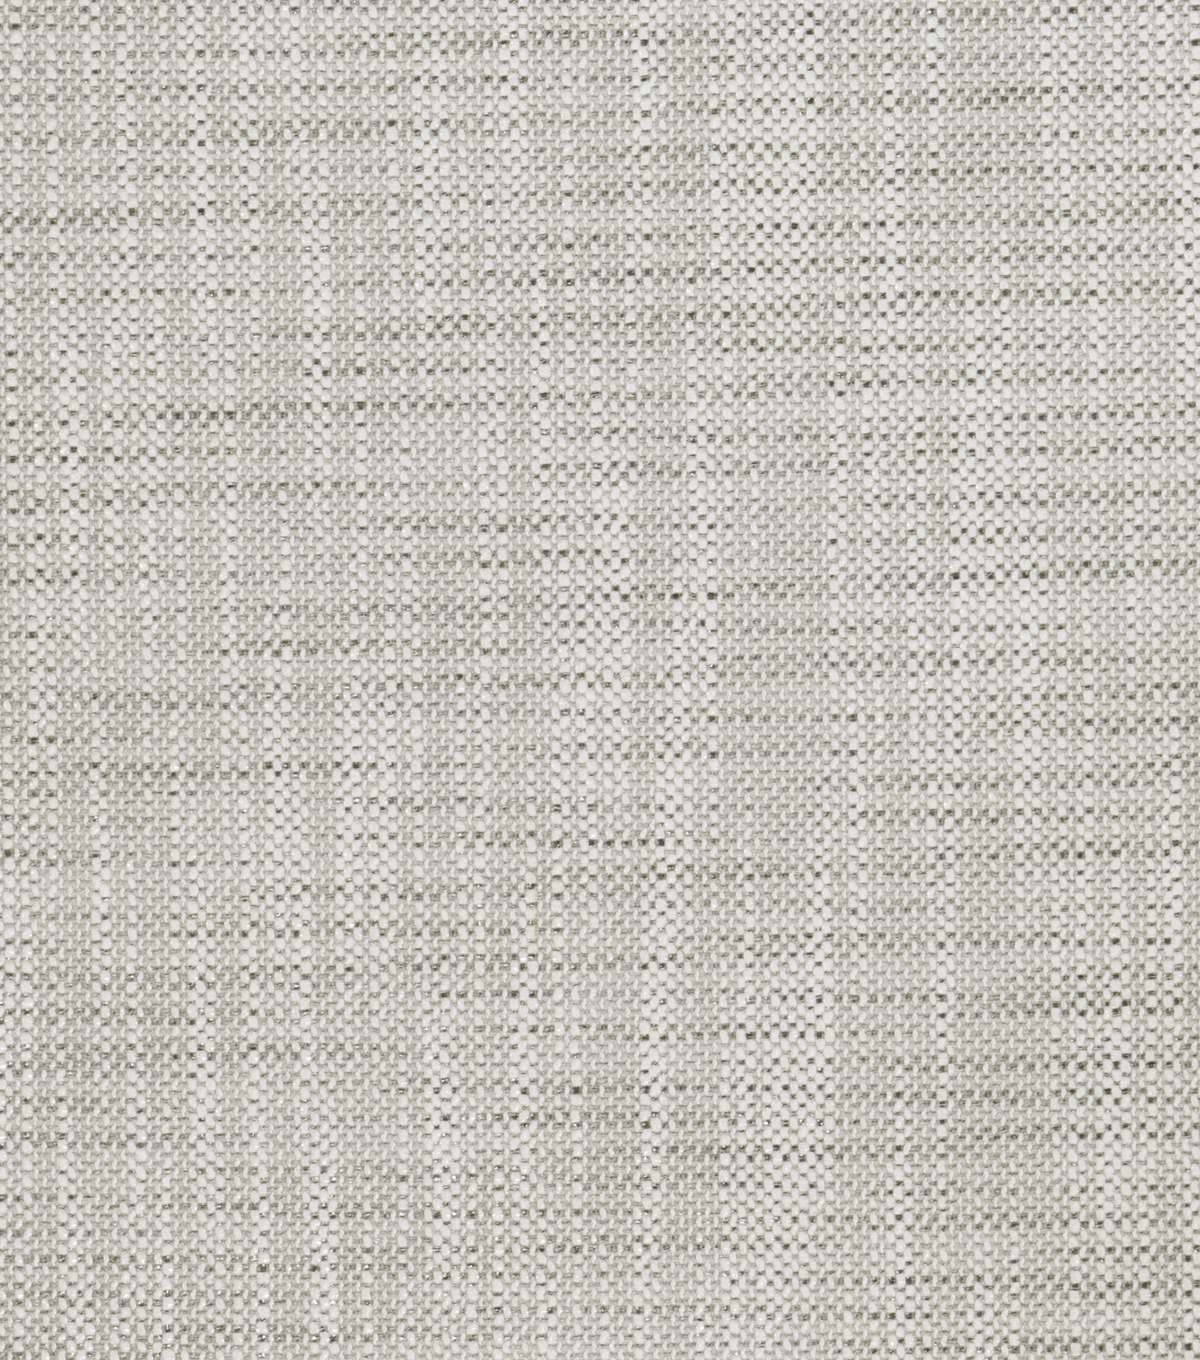 Home Decor 8x8 Fabric Swatch-Eaton Square Countdown Silver